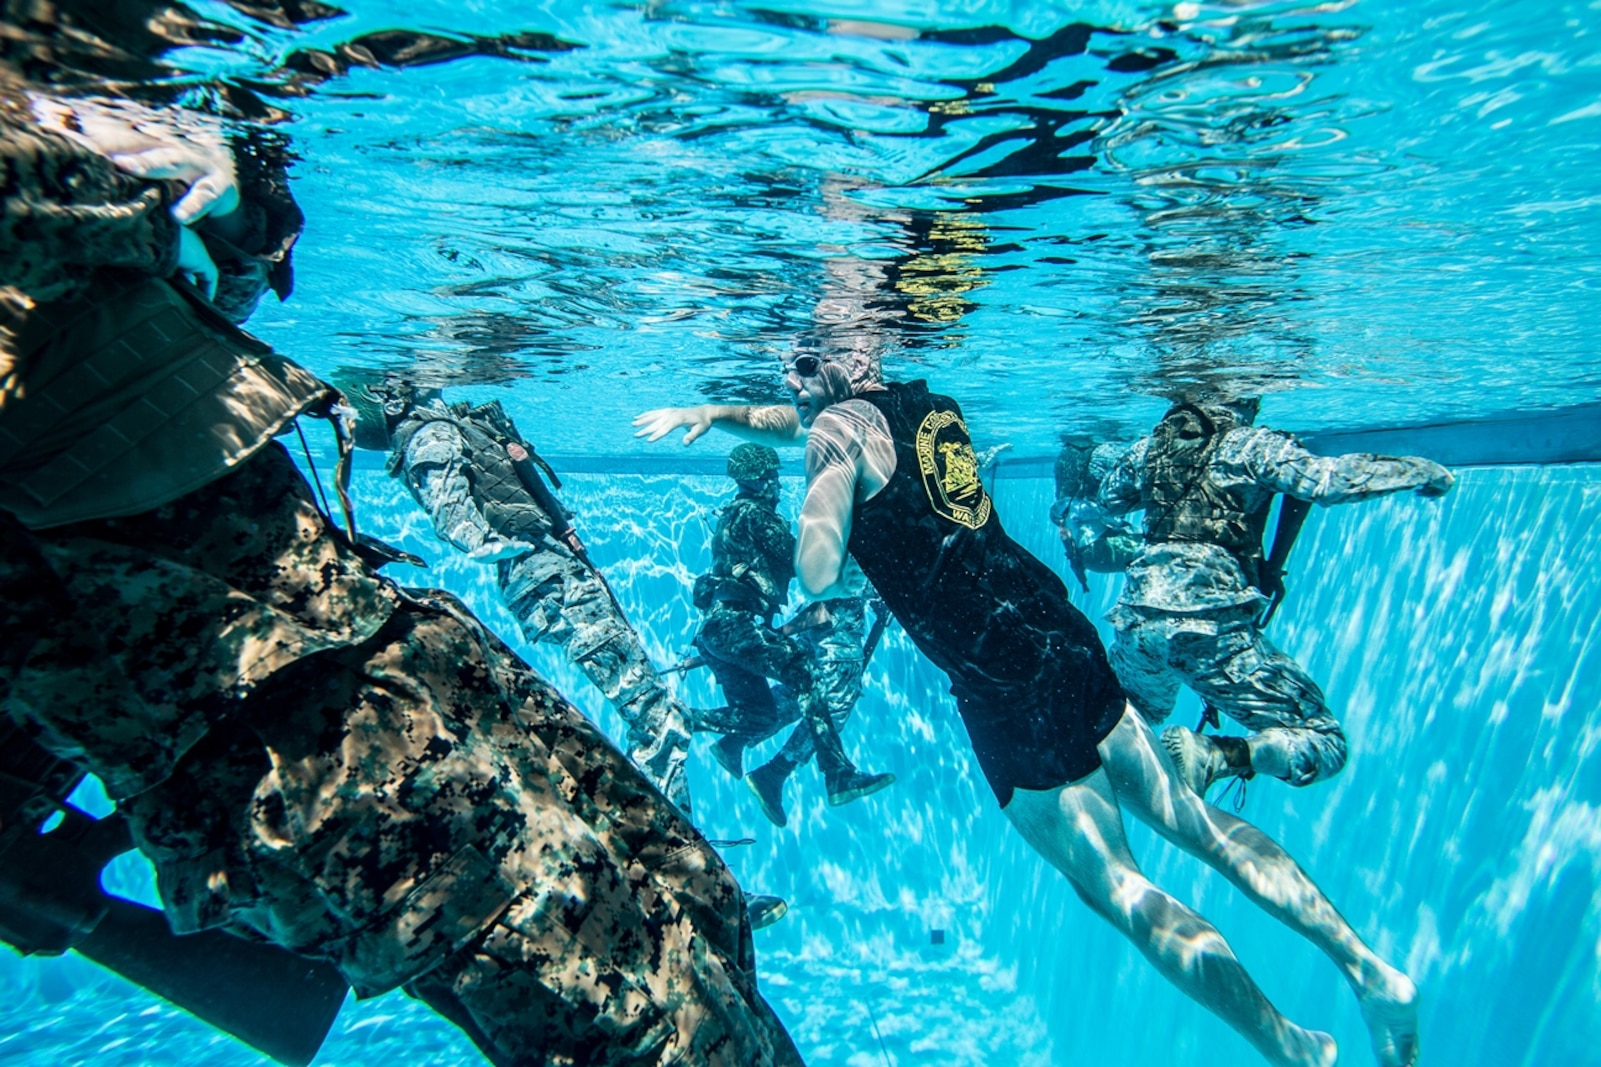 U.S. Marine Cpl. Daniel Ramech, a Marine Corps Instructor of Water Survival with Headquarters Regiment, 1st Marine Logistics Group, observes a water survival advanced course on Camp Pendleton, Calif., June 14, 2017. MCIWS teaches Marines how to improve their abilities in surviving and saving others in water. 1st MLG is home to multiple military occupations that work together to provide support to each element of the 1st Marine Expeditionary Force through logistics beyond the capabilities of the supported units. (U.S. Marine Corps photo by Sgt. Rodion Zabolotiny)